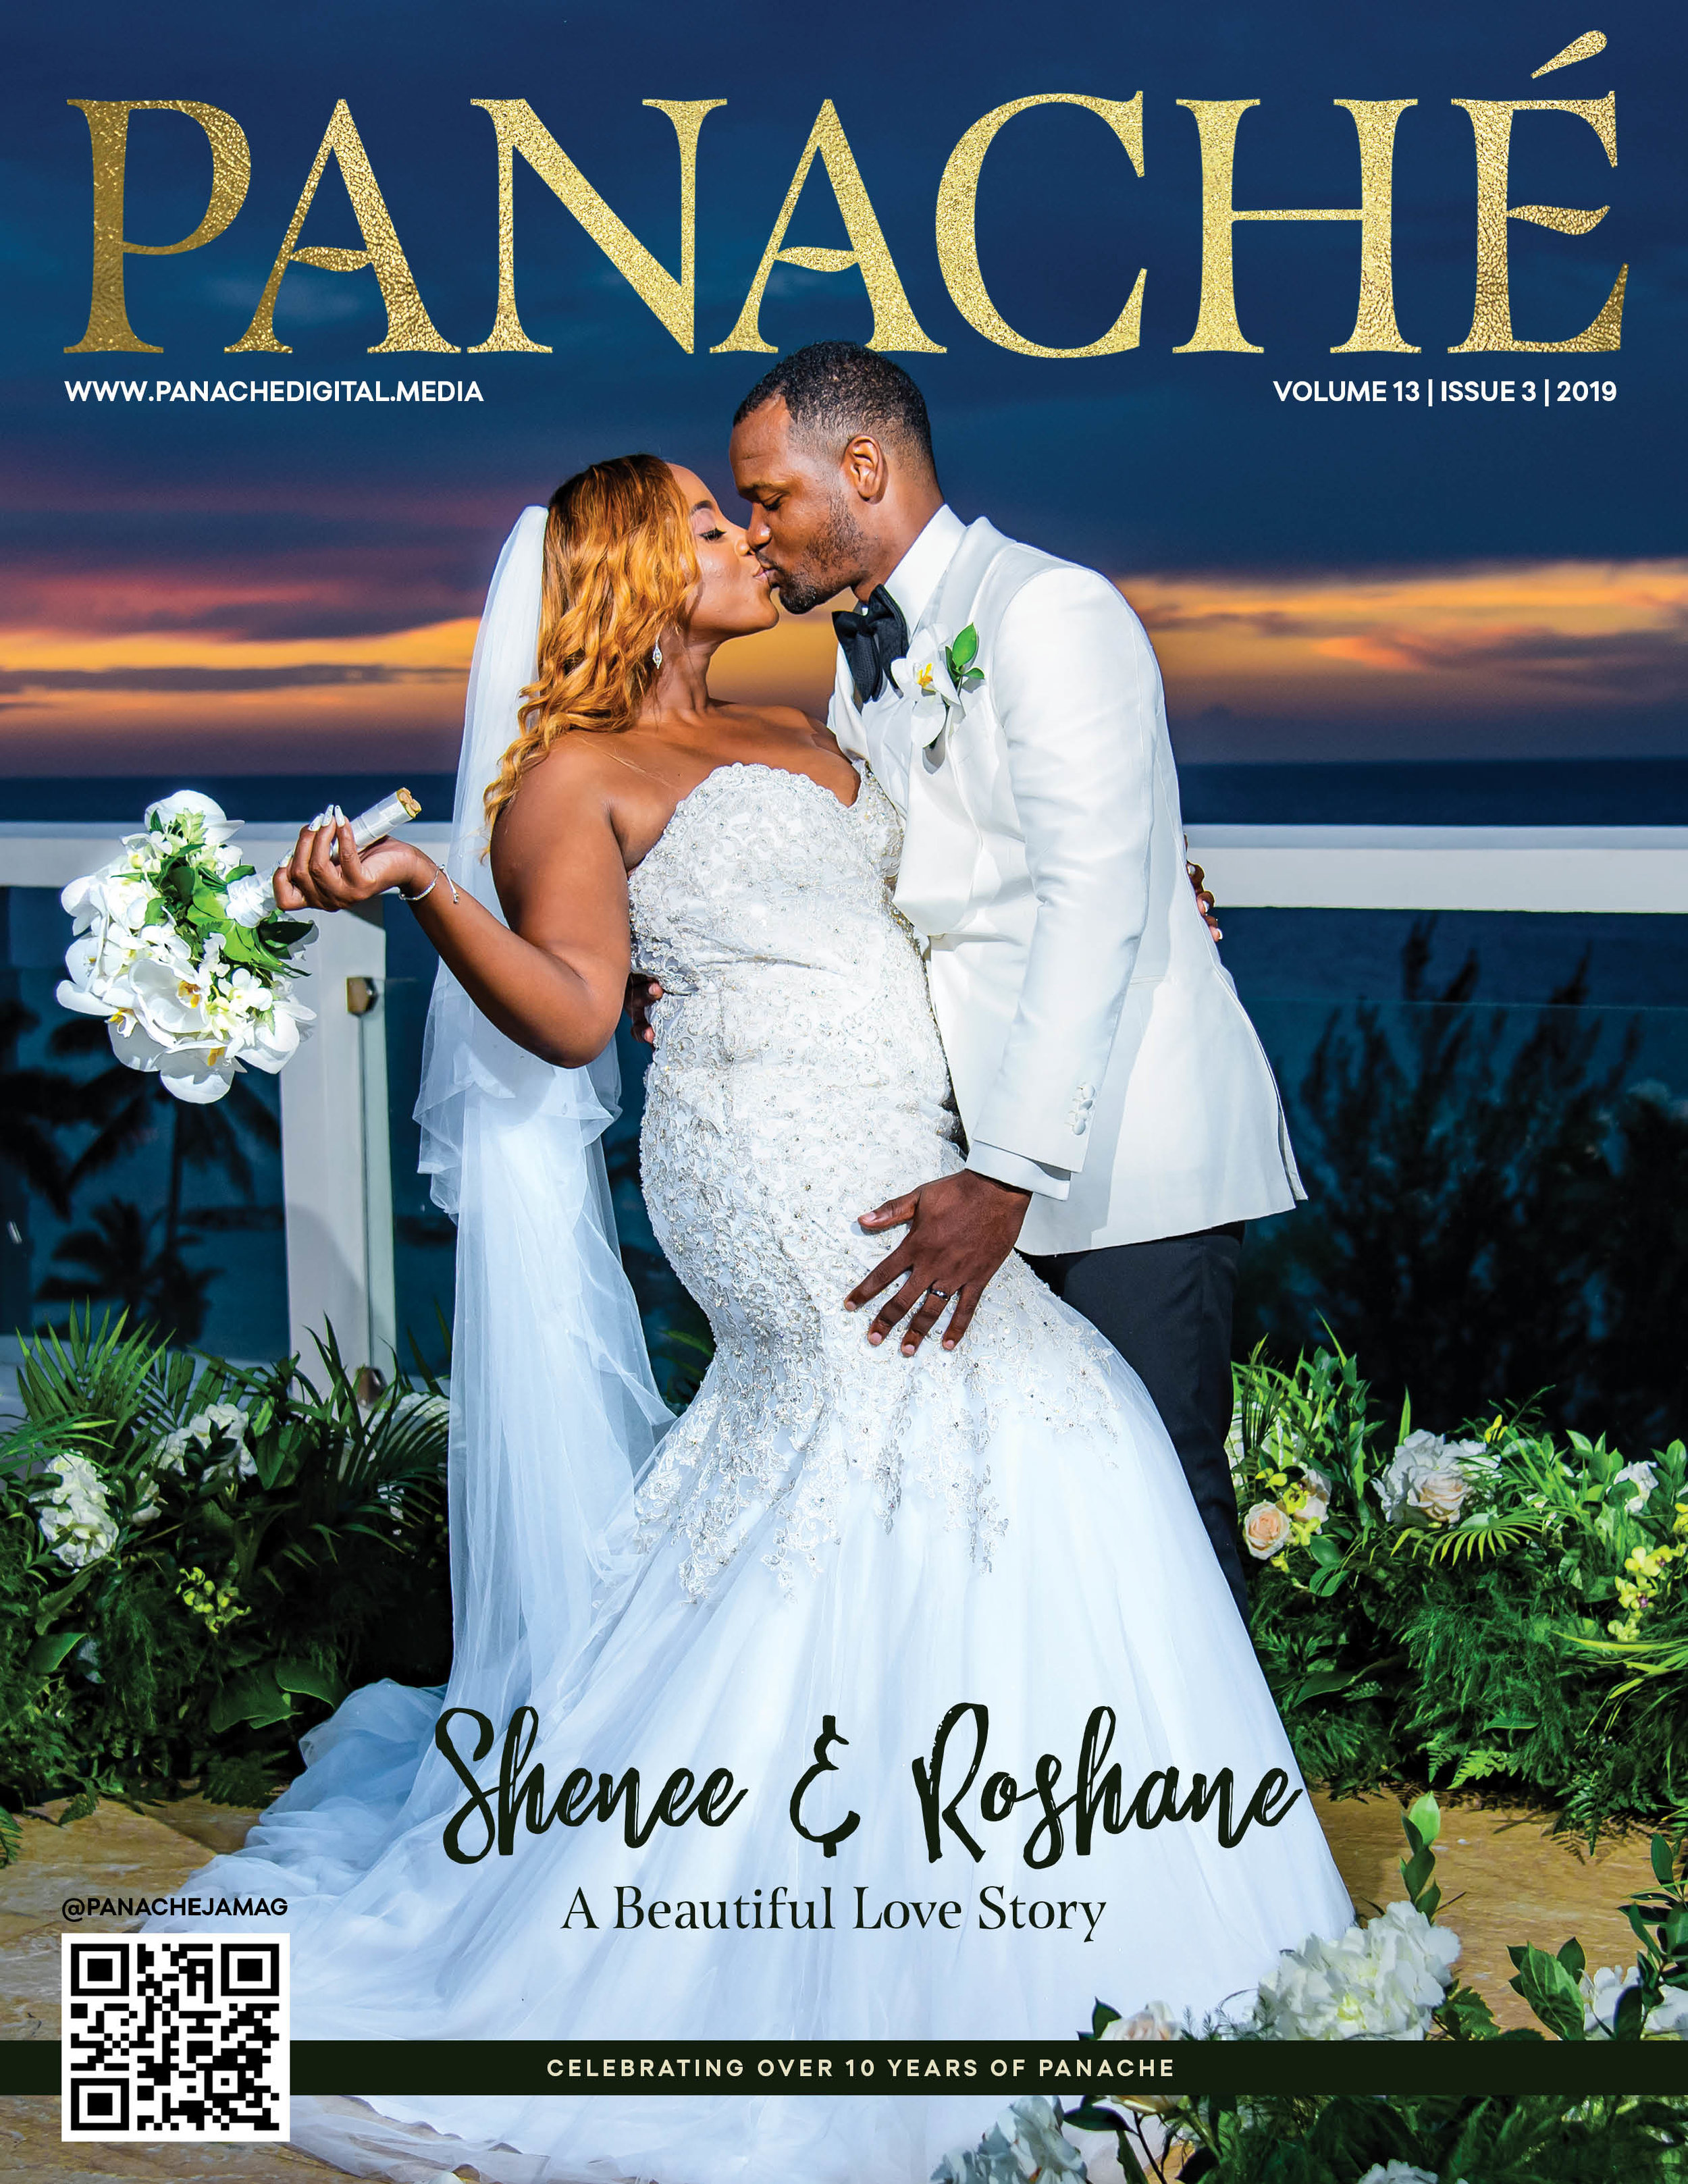 PANACHE Issue 3 2019 - Young love birds, Shenee & Roshane Anderson, share their beautiful love story with PANACHE. Enjoy our review of Reggae Sumfest 2019 by Fonnique Richardson and delight in the roots, rock, reggae themed collection by Jamaican fashion designer, Sabrina Reynolds.